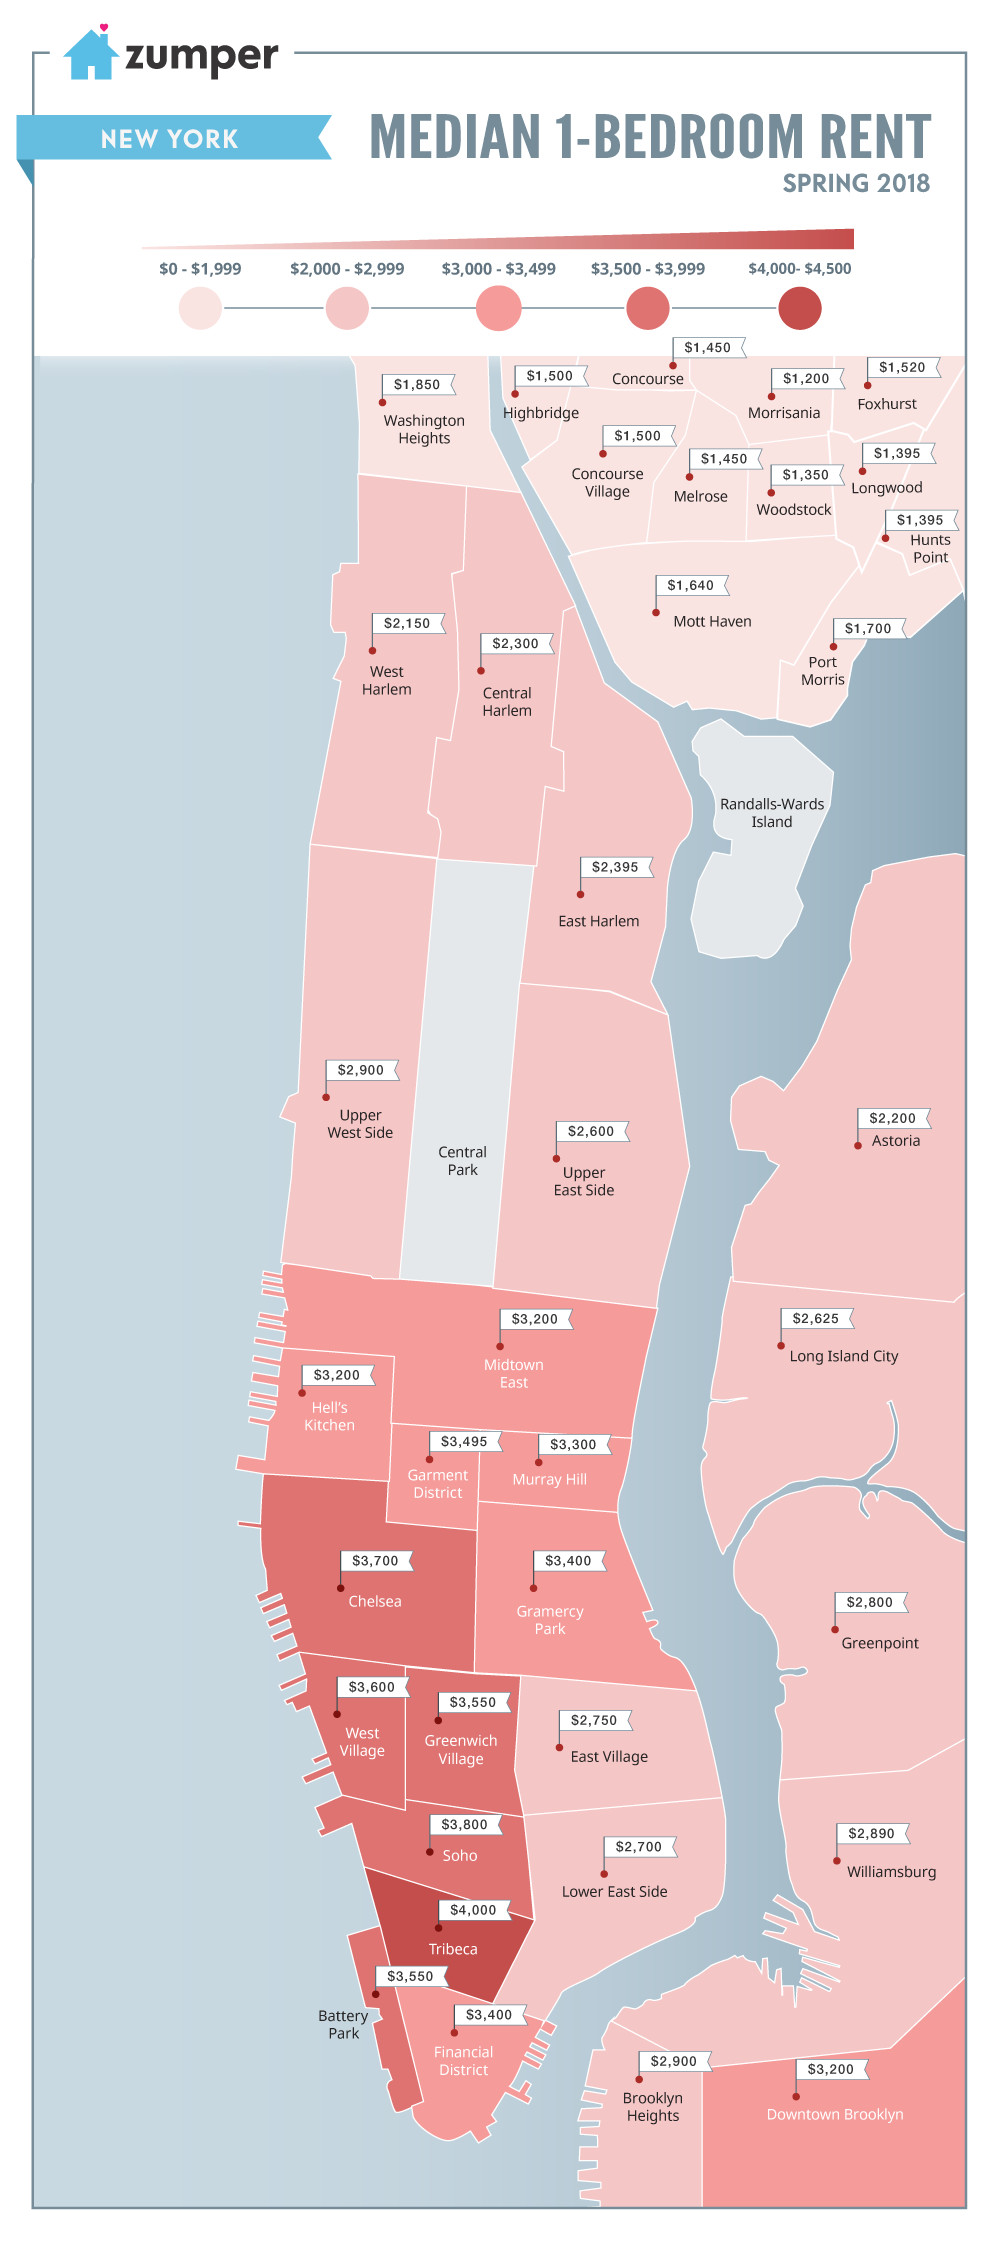 Manhattan And Brooklyn 1br Rent Prices Across Various